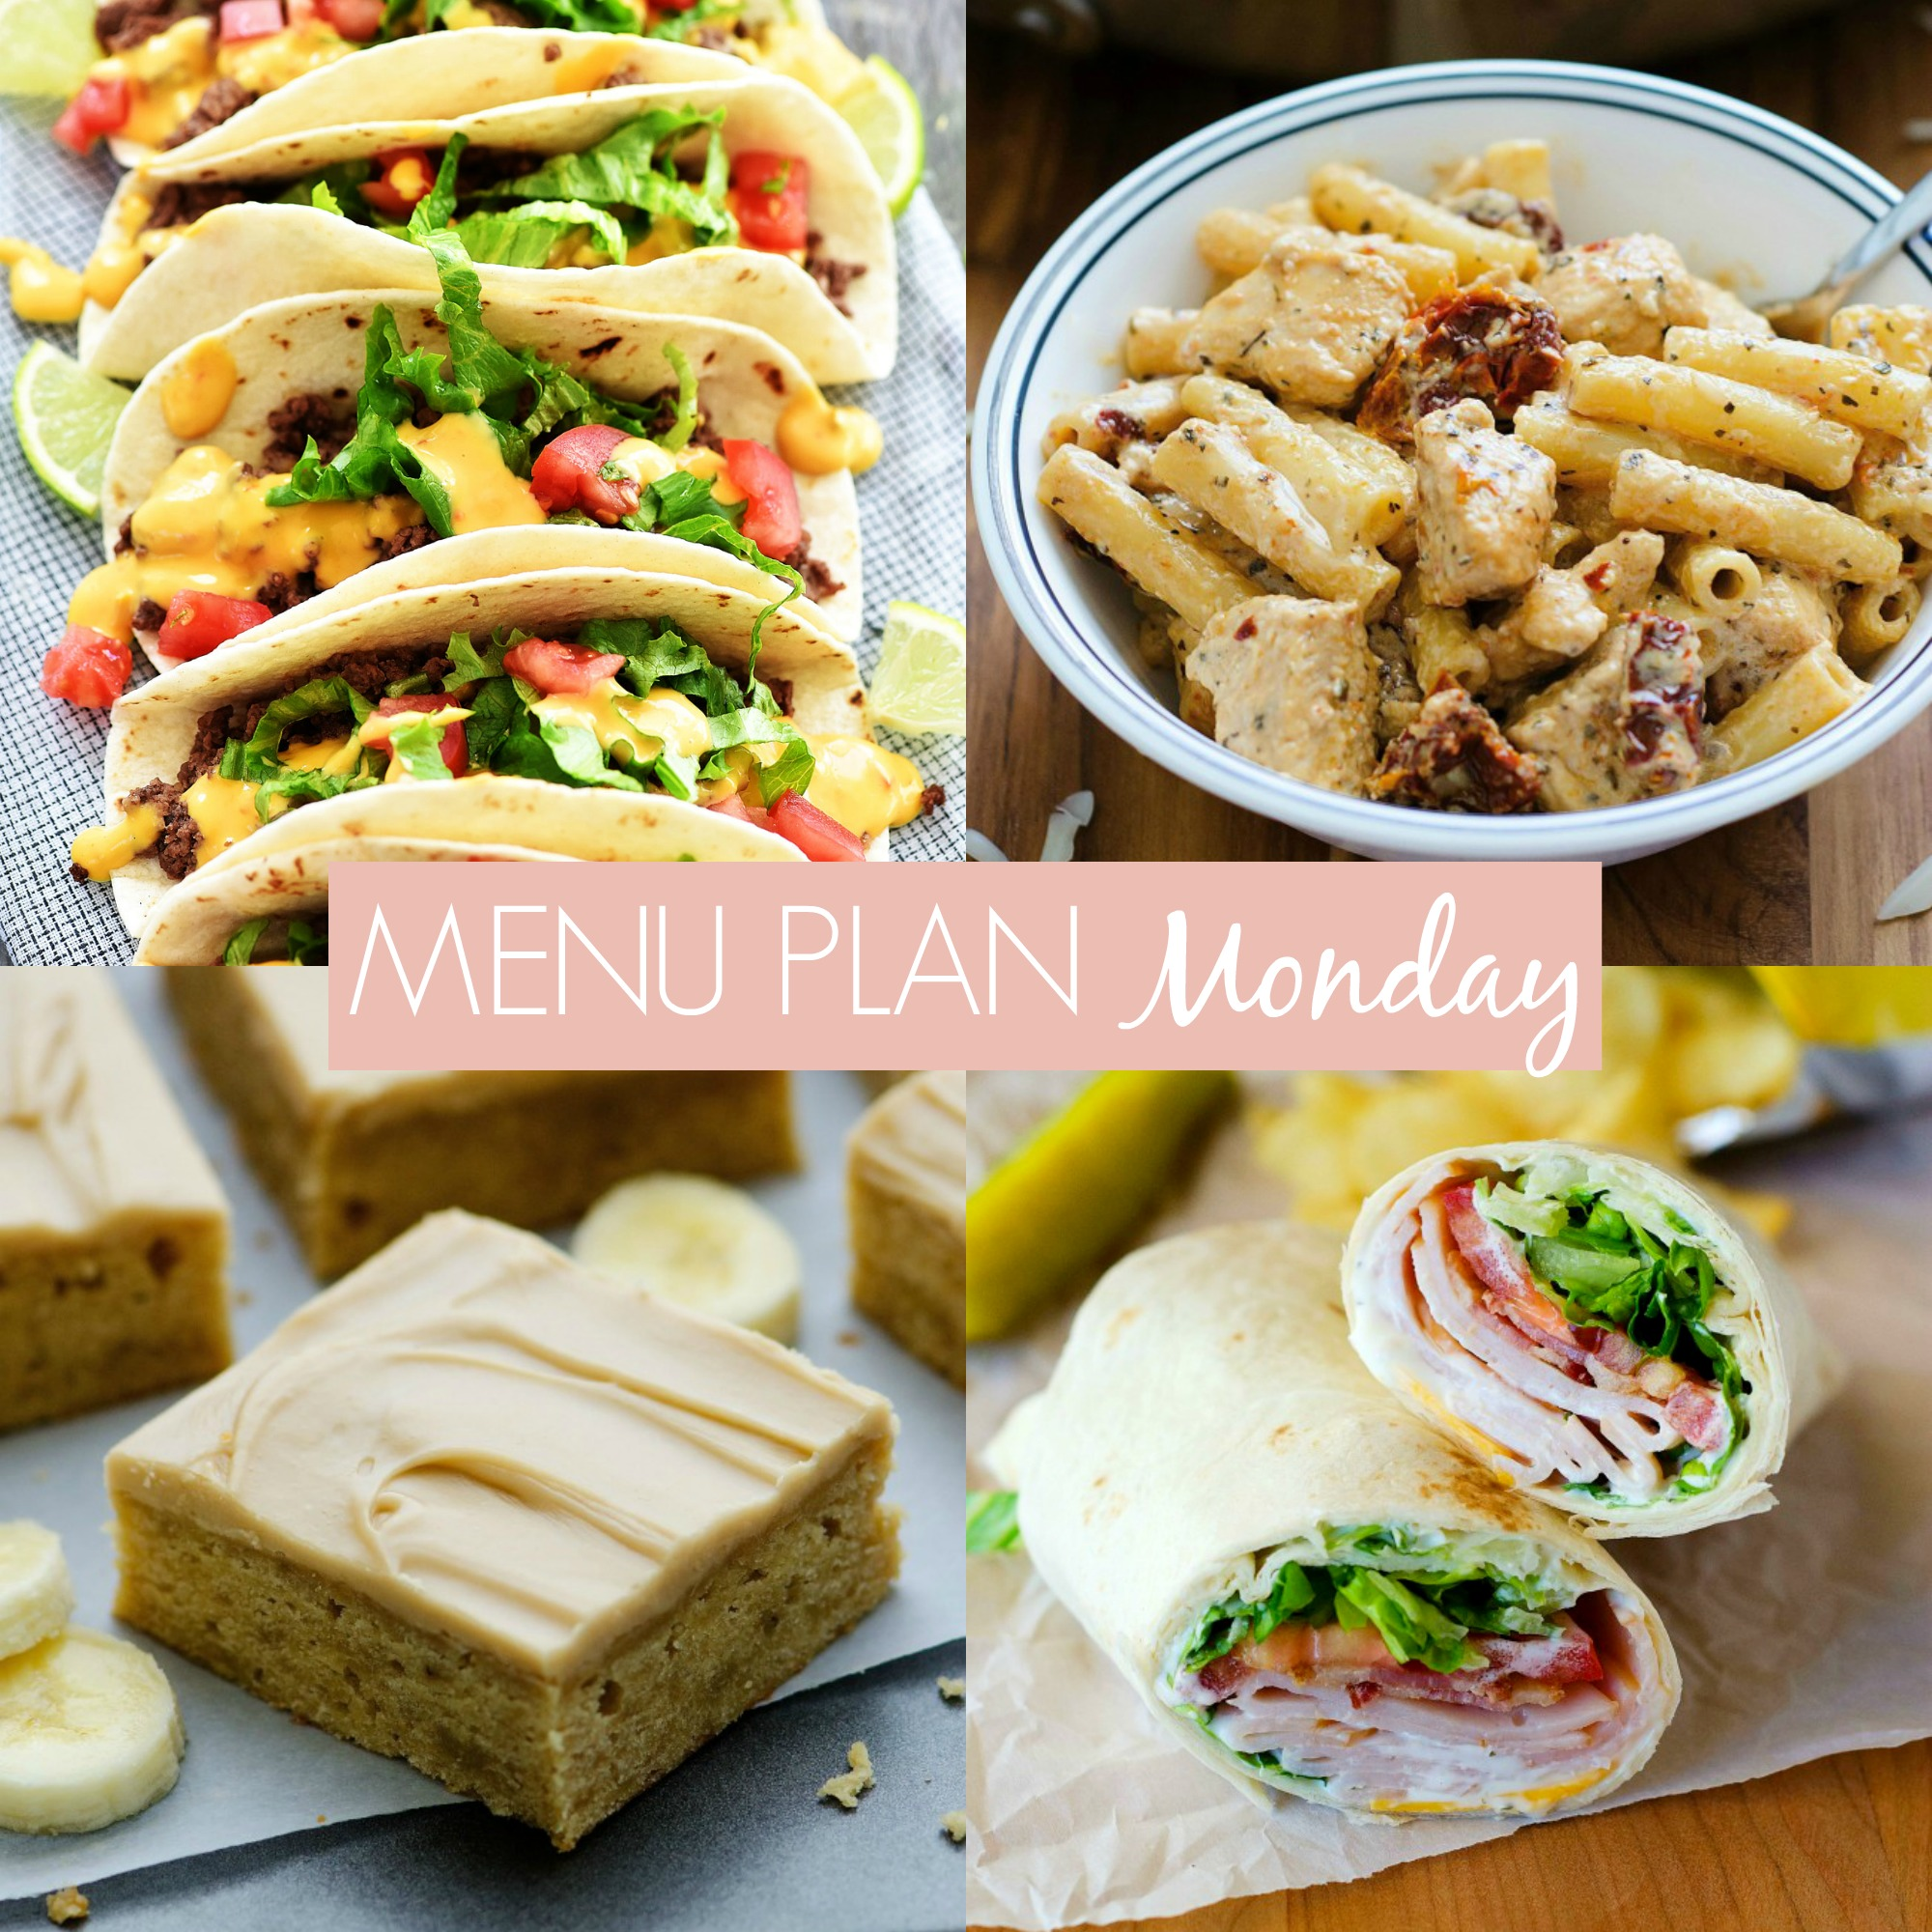 Menu Plan Monday #234